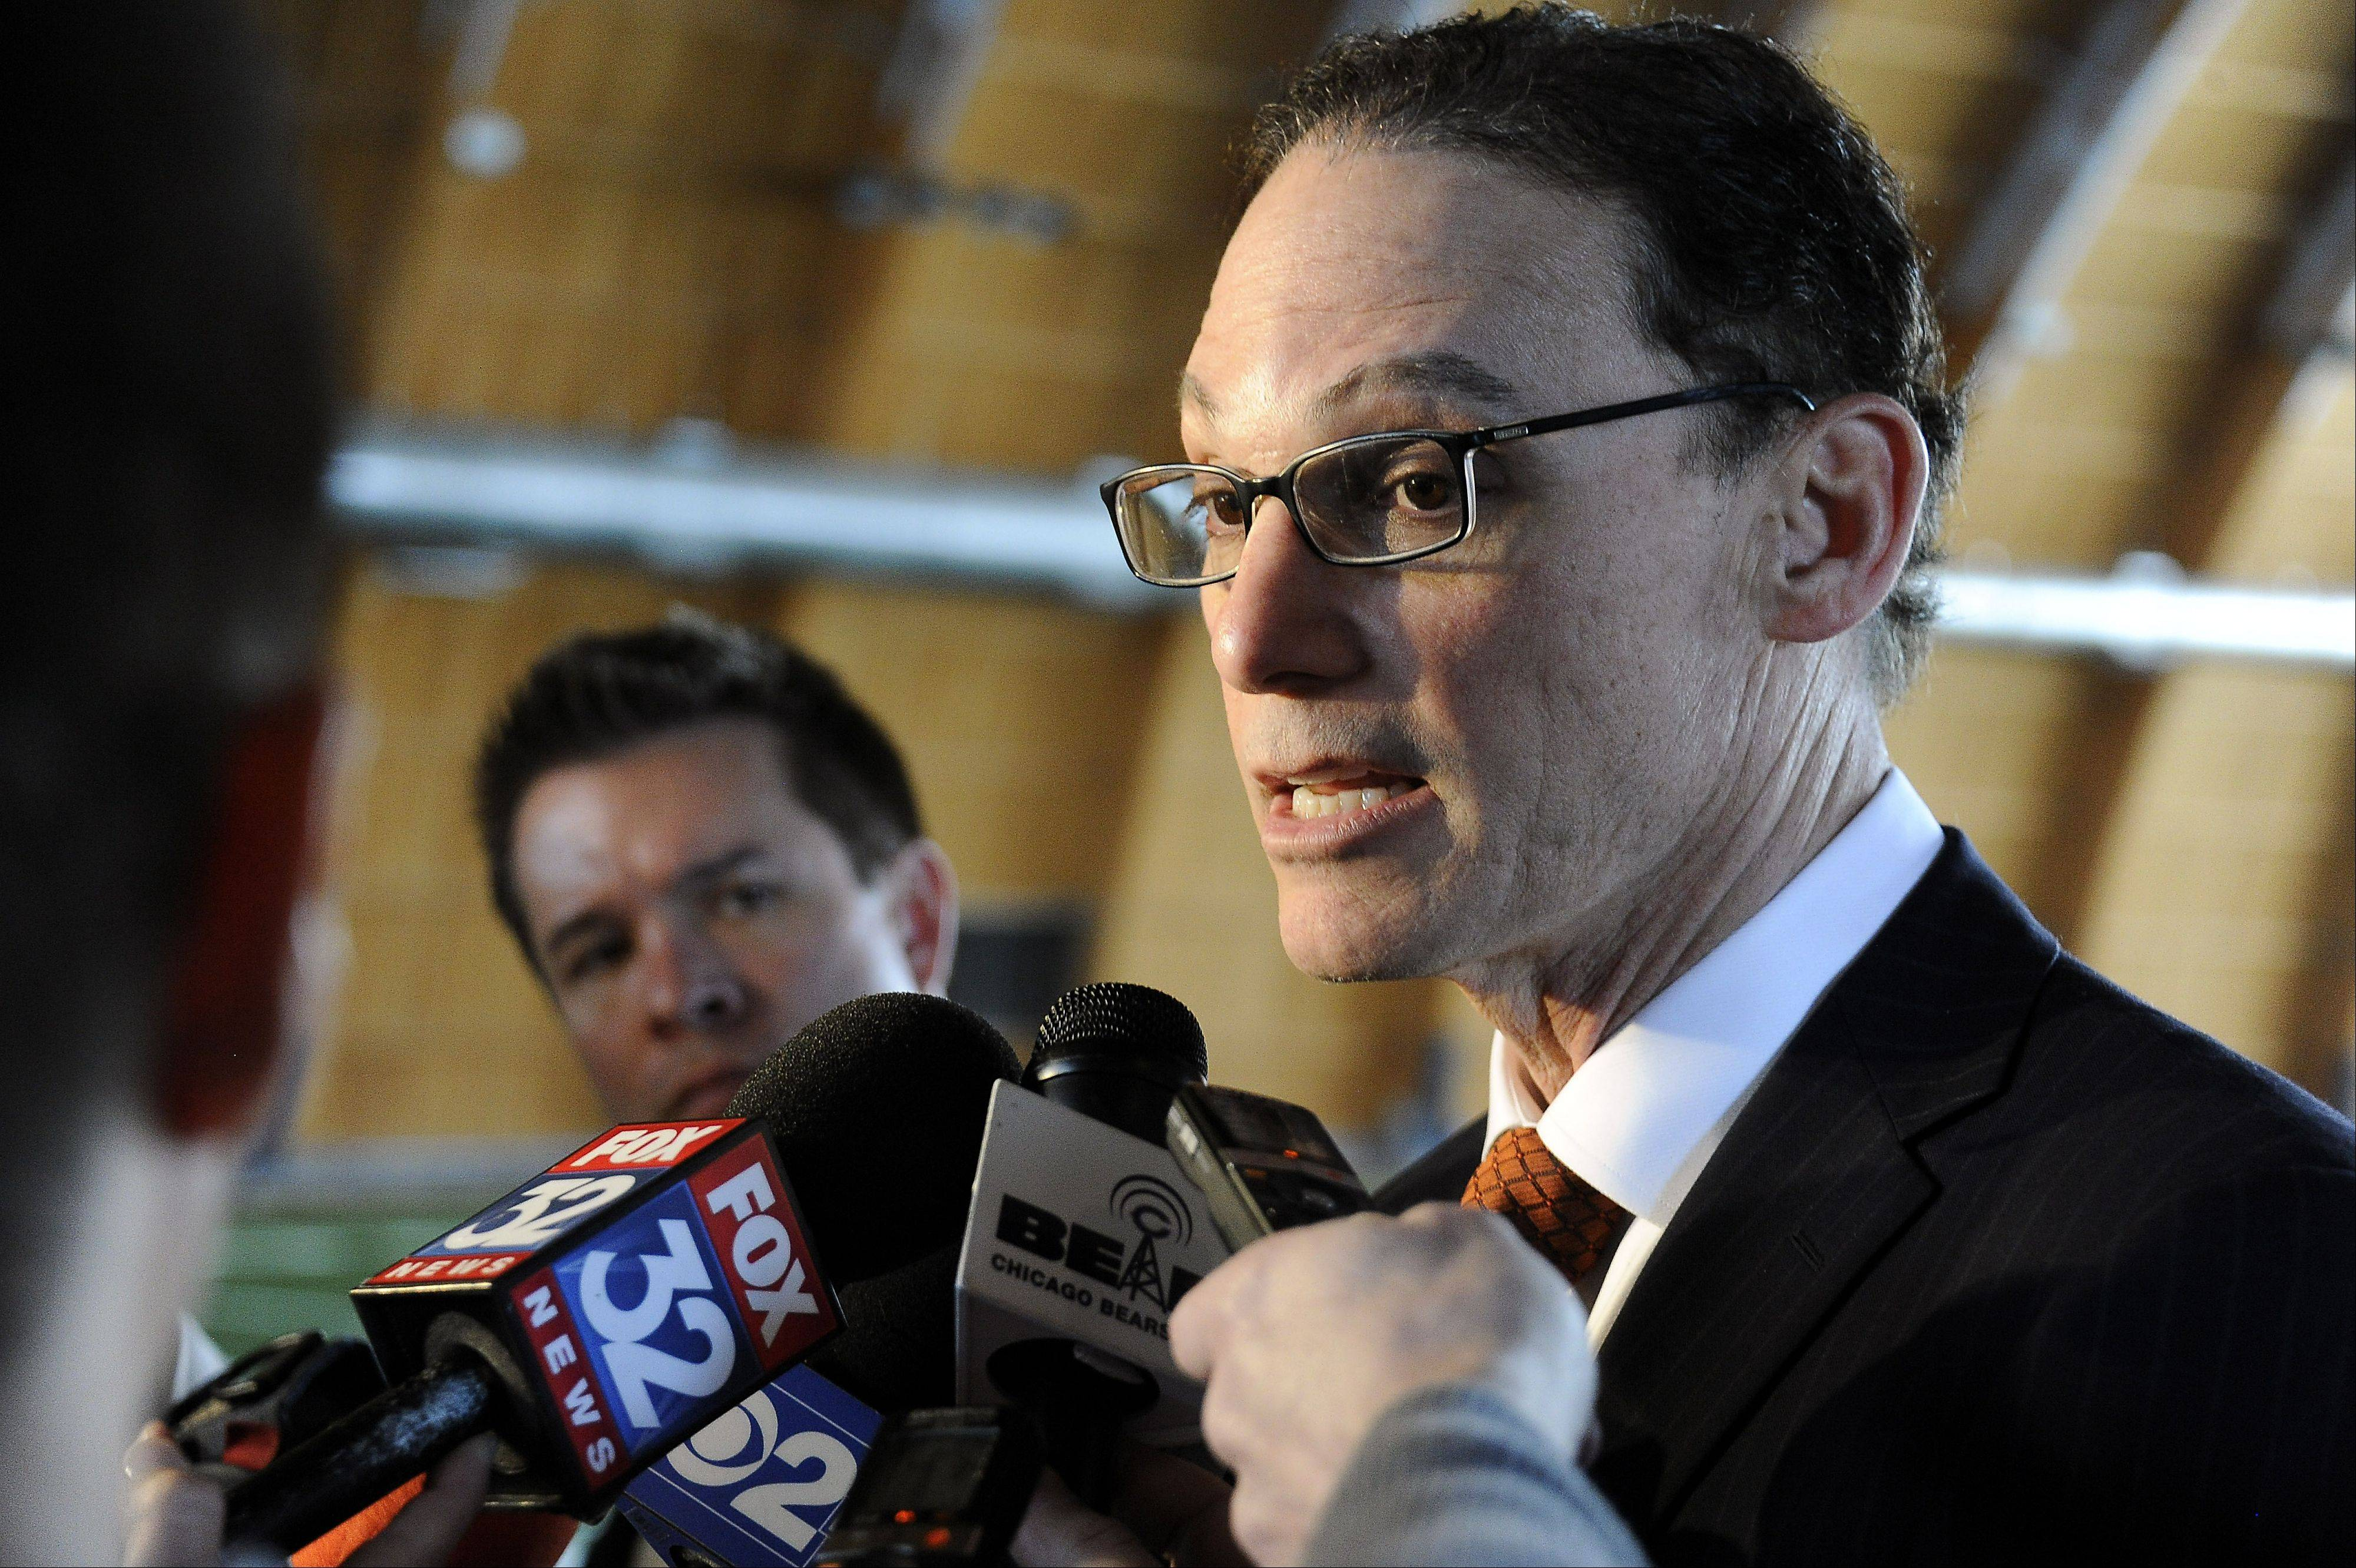 Bears head coach Marc Trestman answers questions concerning the new Bears players Martellus Bennett and Jermon Bushrod at the Walter Payton Center in Lake Forest on Wednesday.